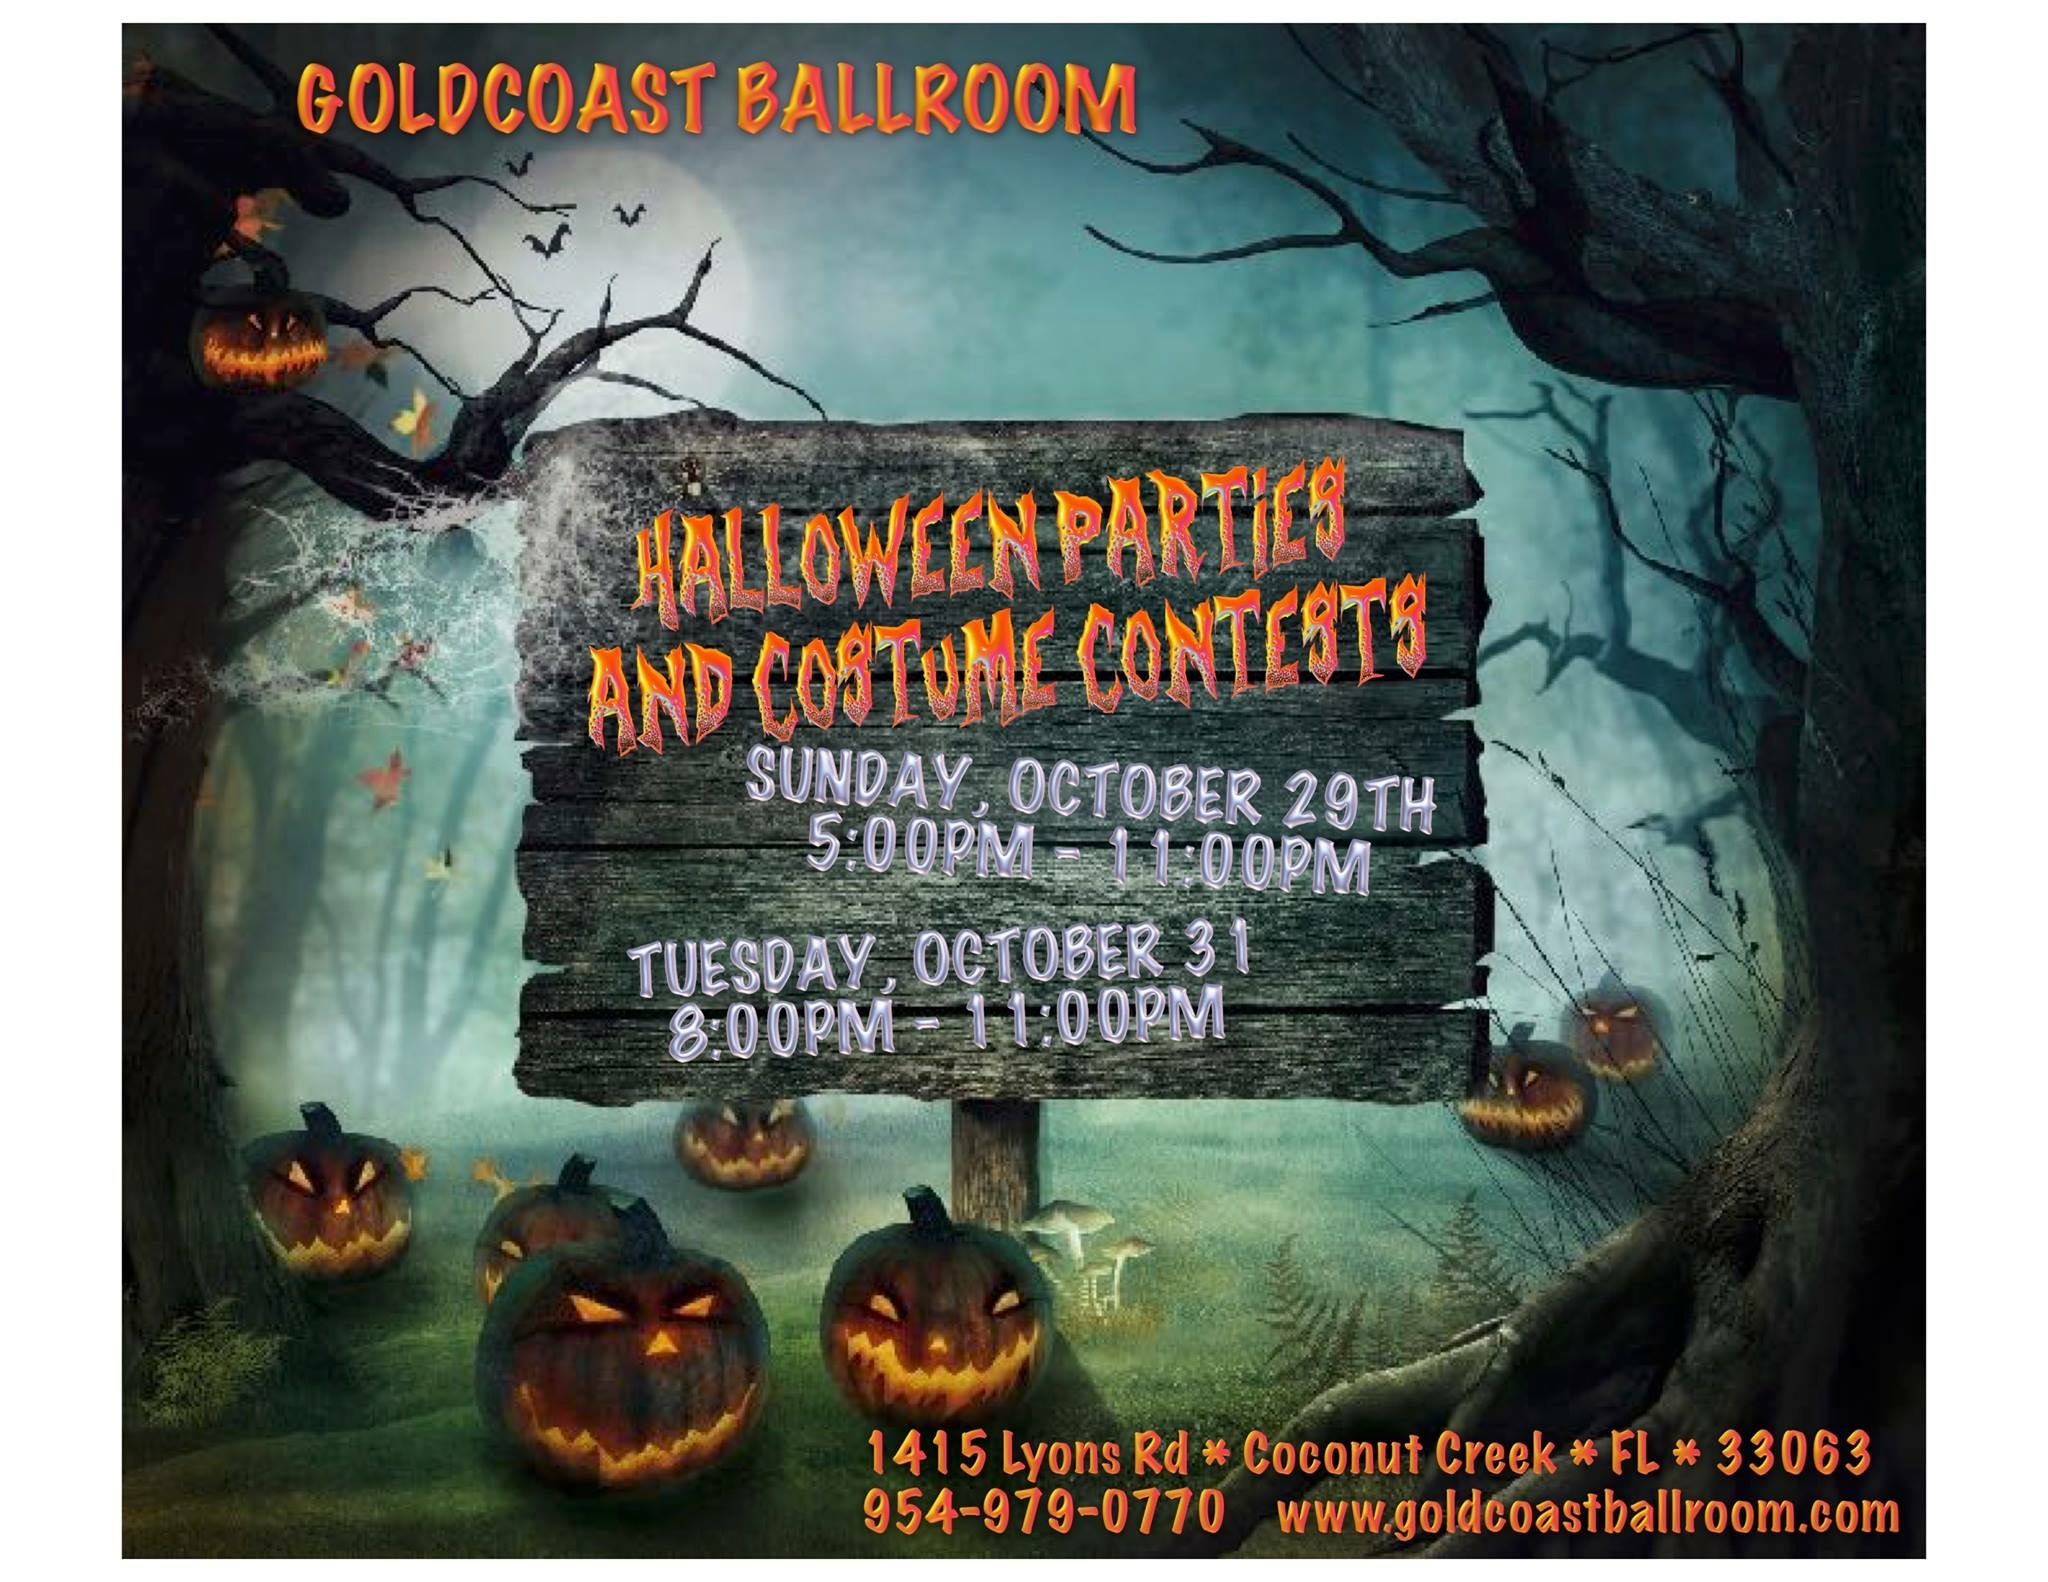 TWO Halloween Parties & Costume Contests!! -  - October 29 and October 31 at Goldcoast Ballroom!!